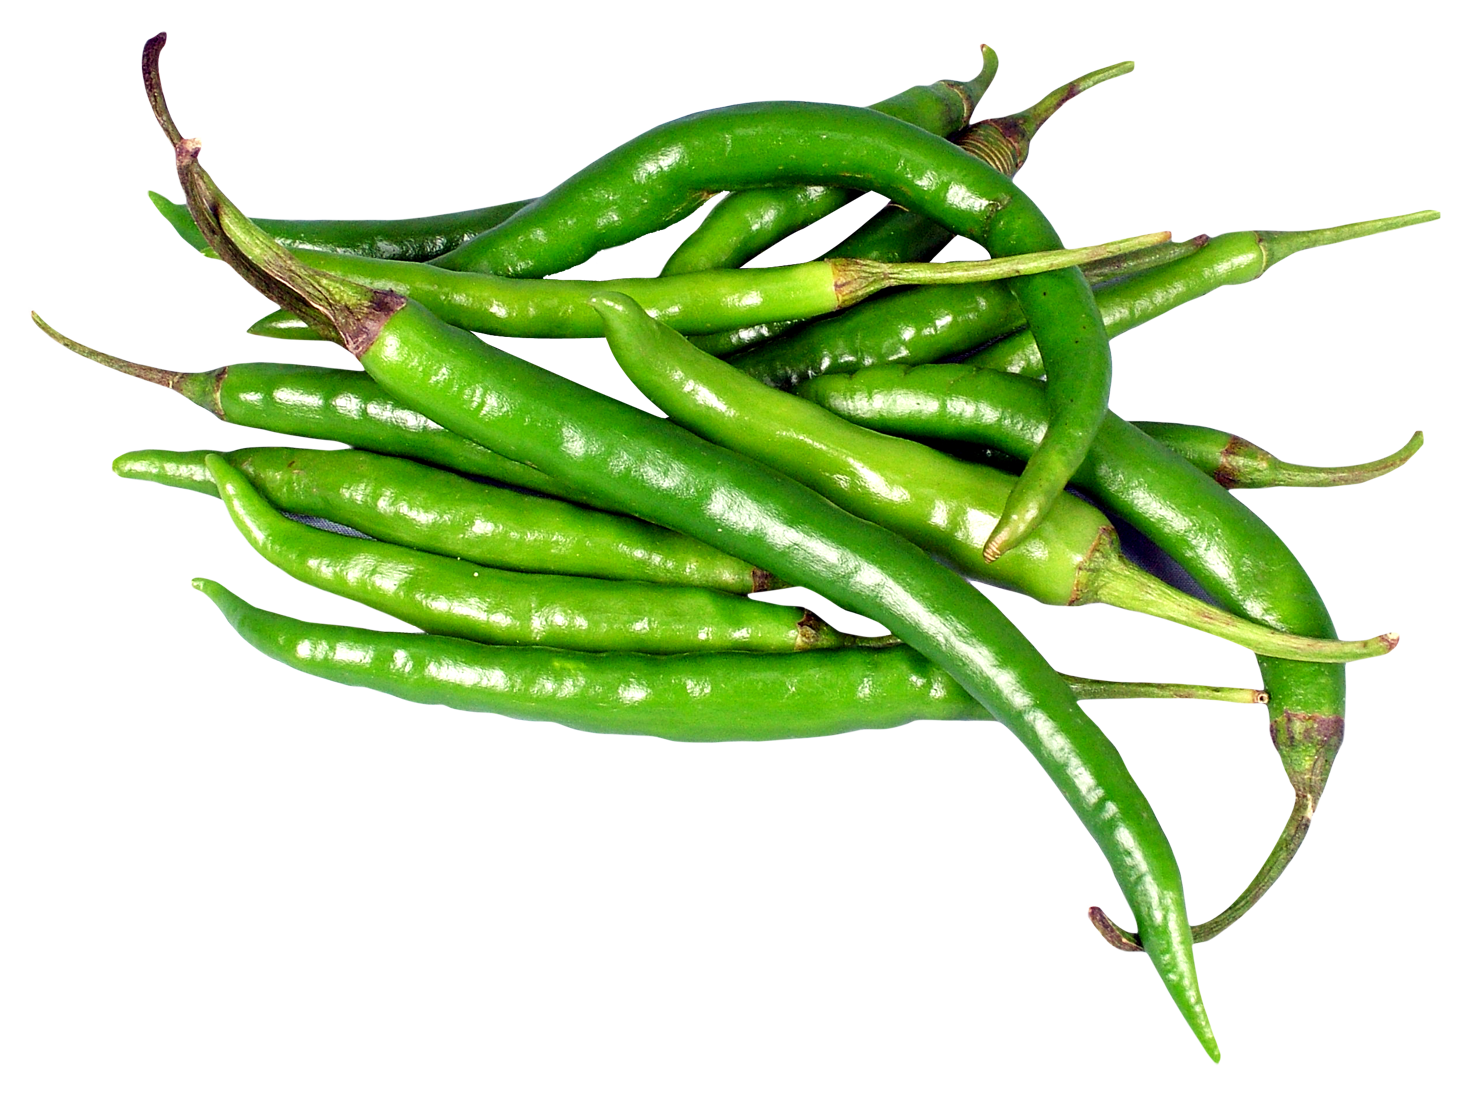 Green chili png. Images pngpix peppers image